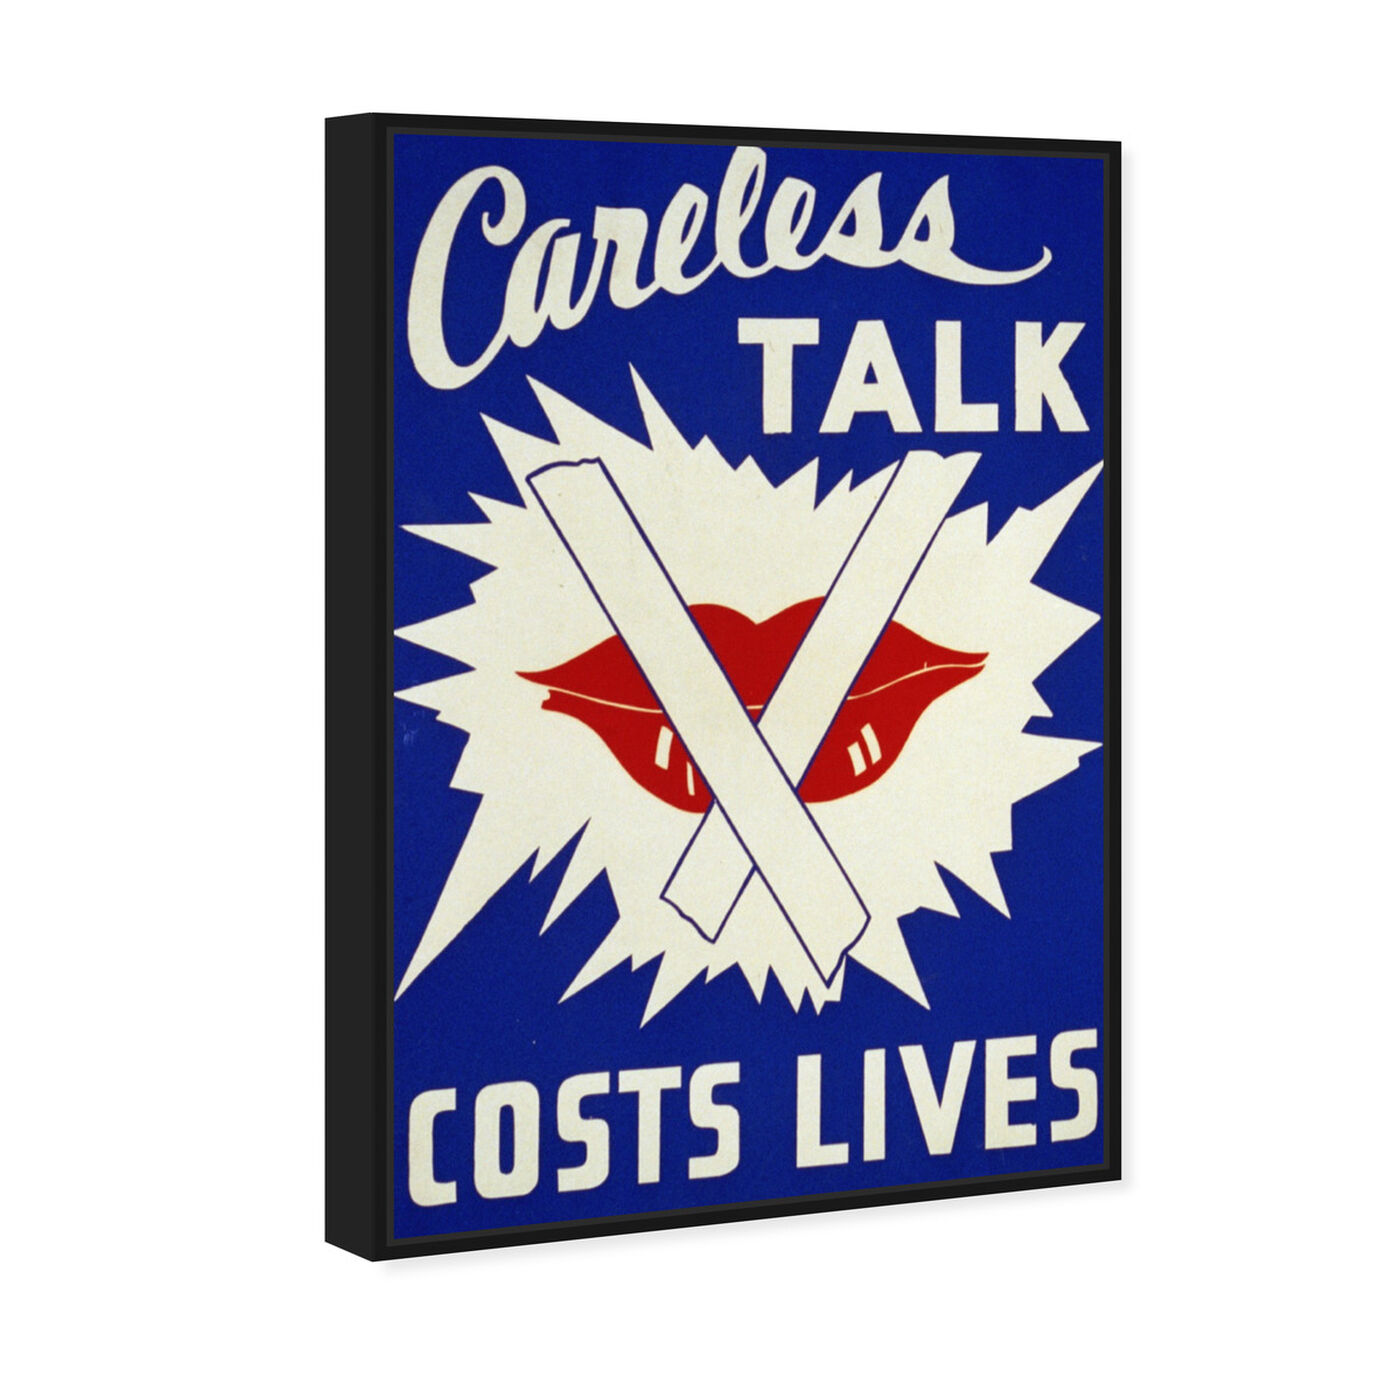 Angled view of Careless Talk featuring advertising and posters art.